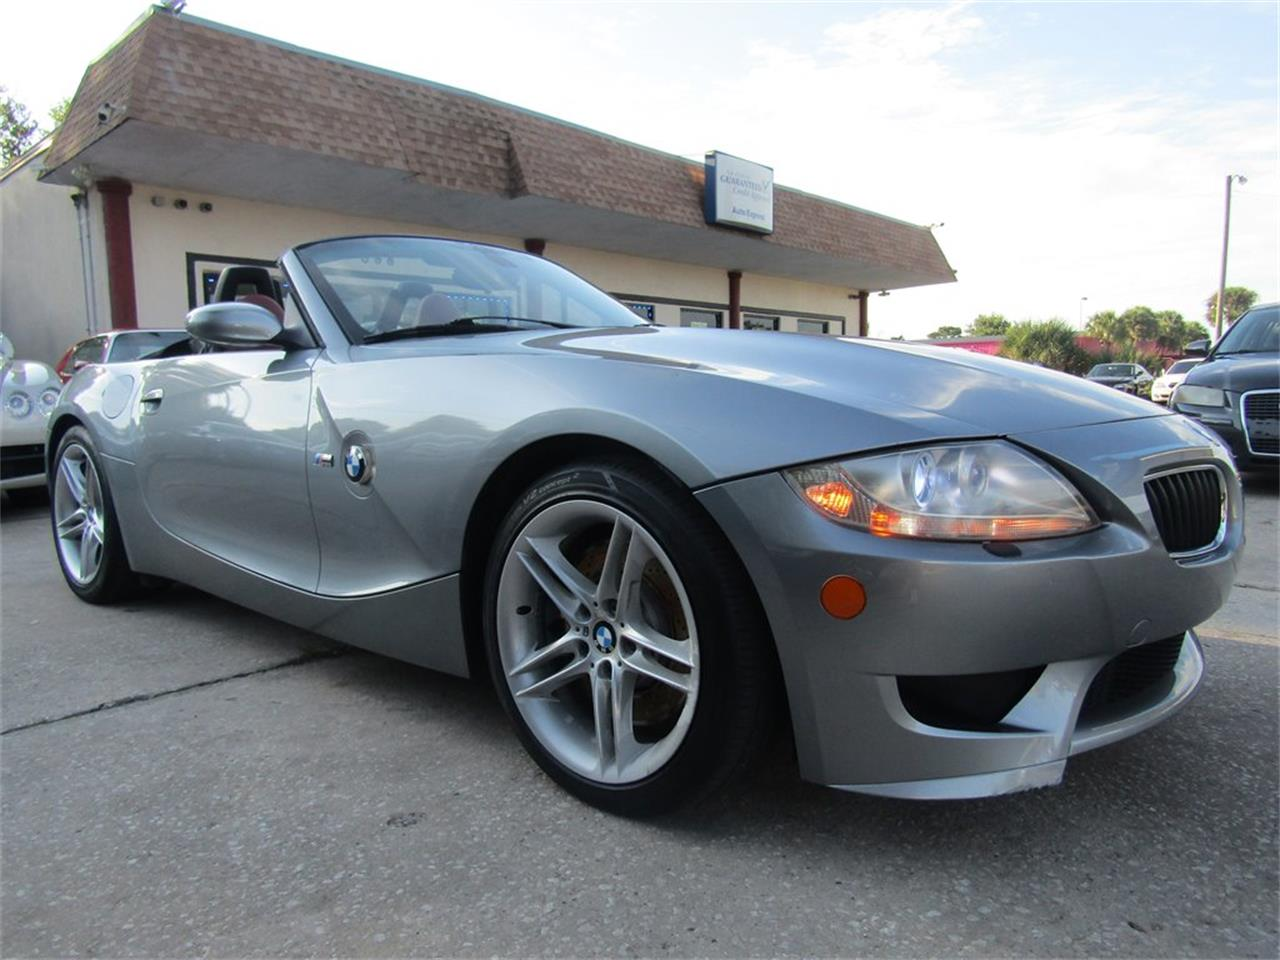 2006 BMW Z4 (CC-1263721) for sale in Orlando, Florida